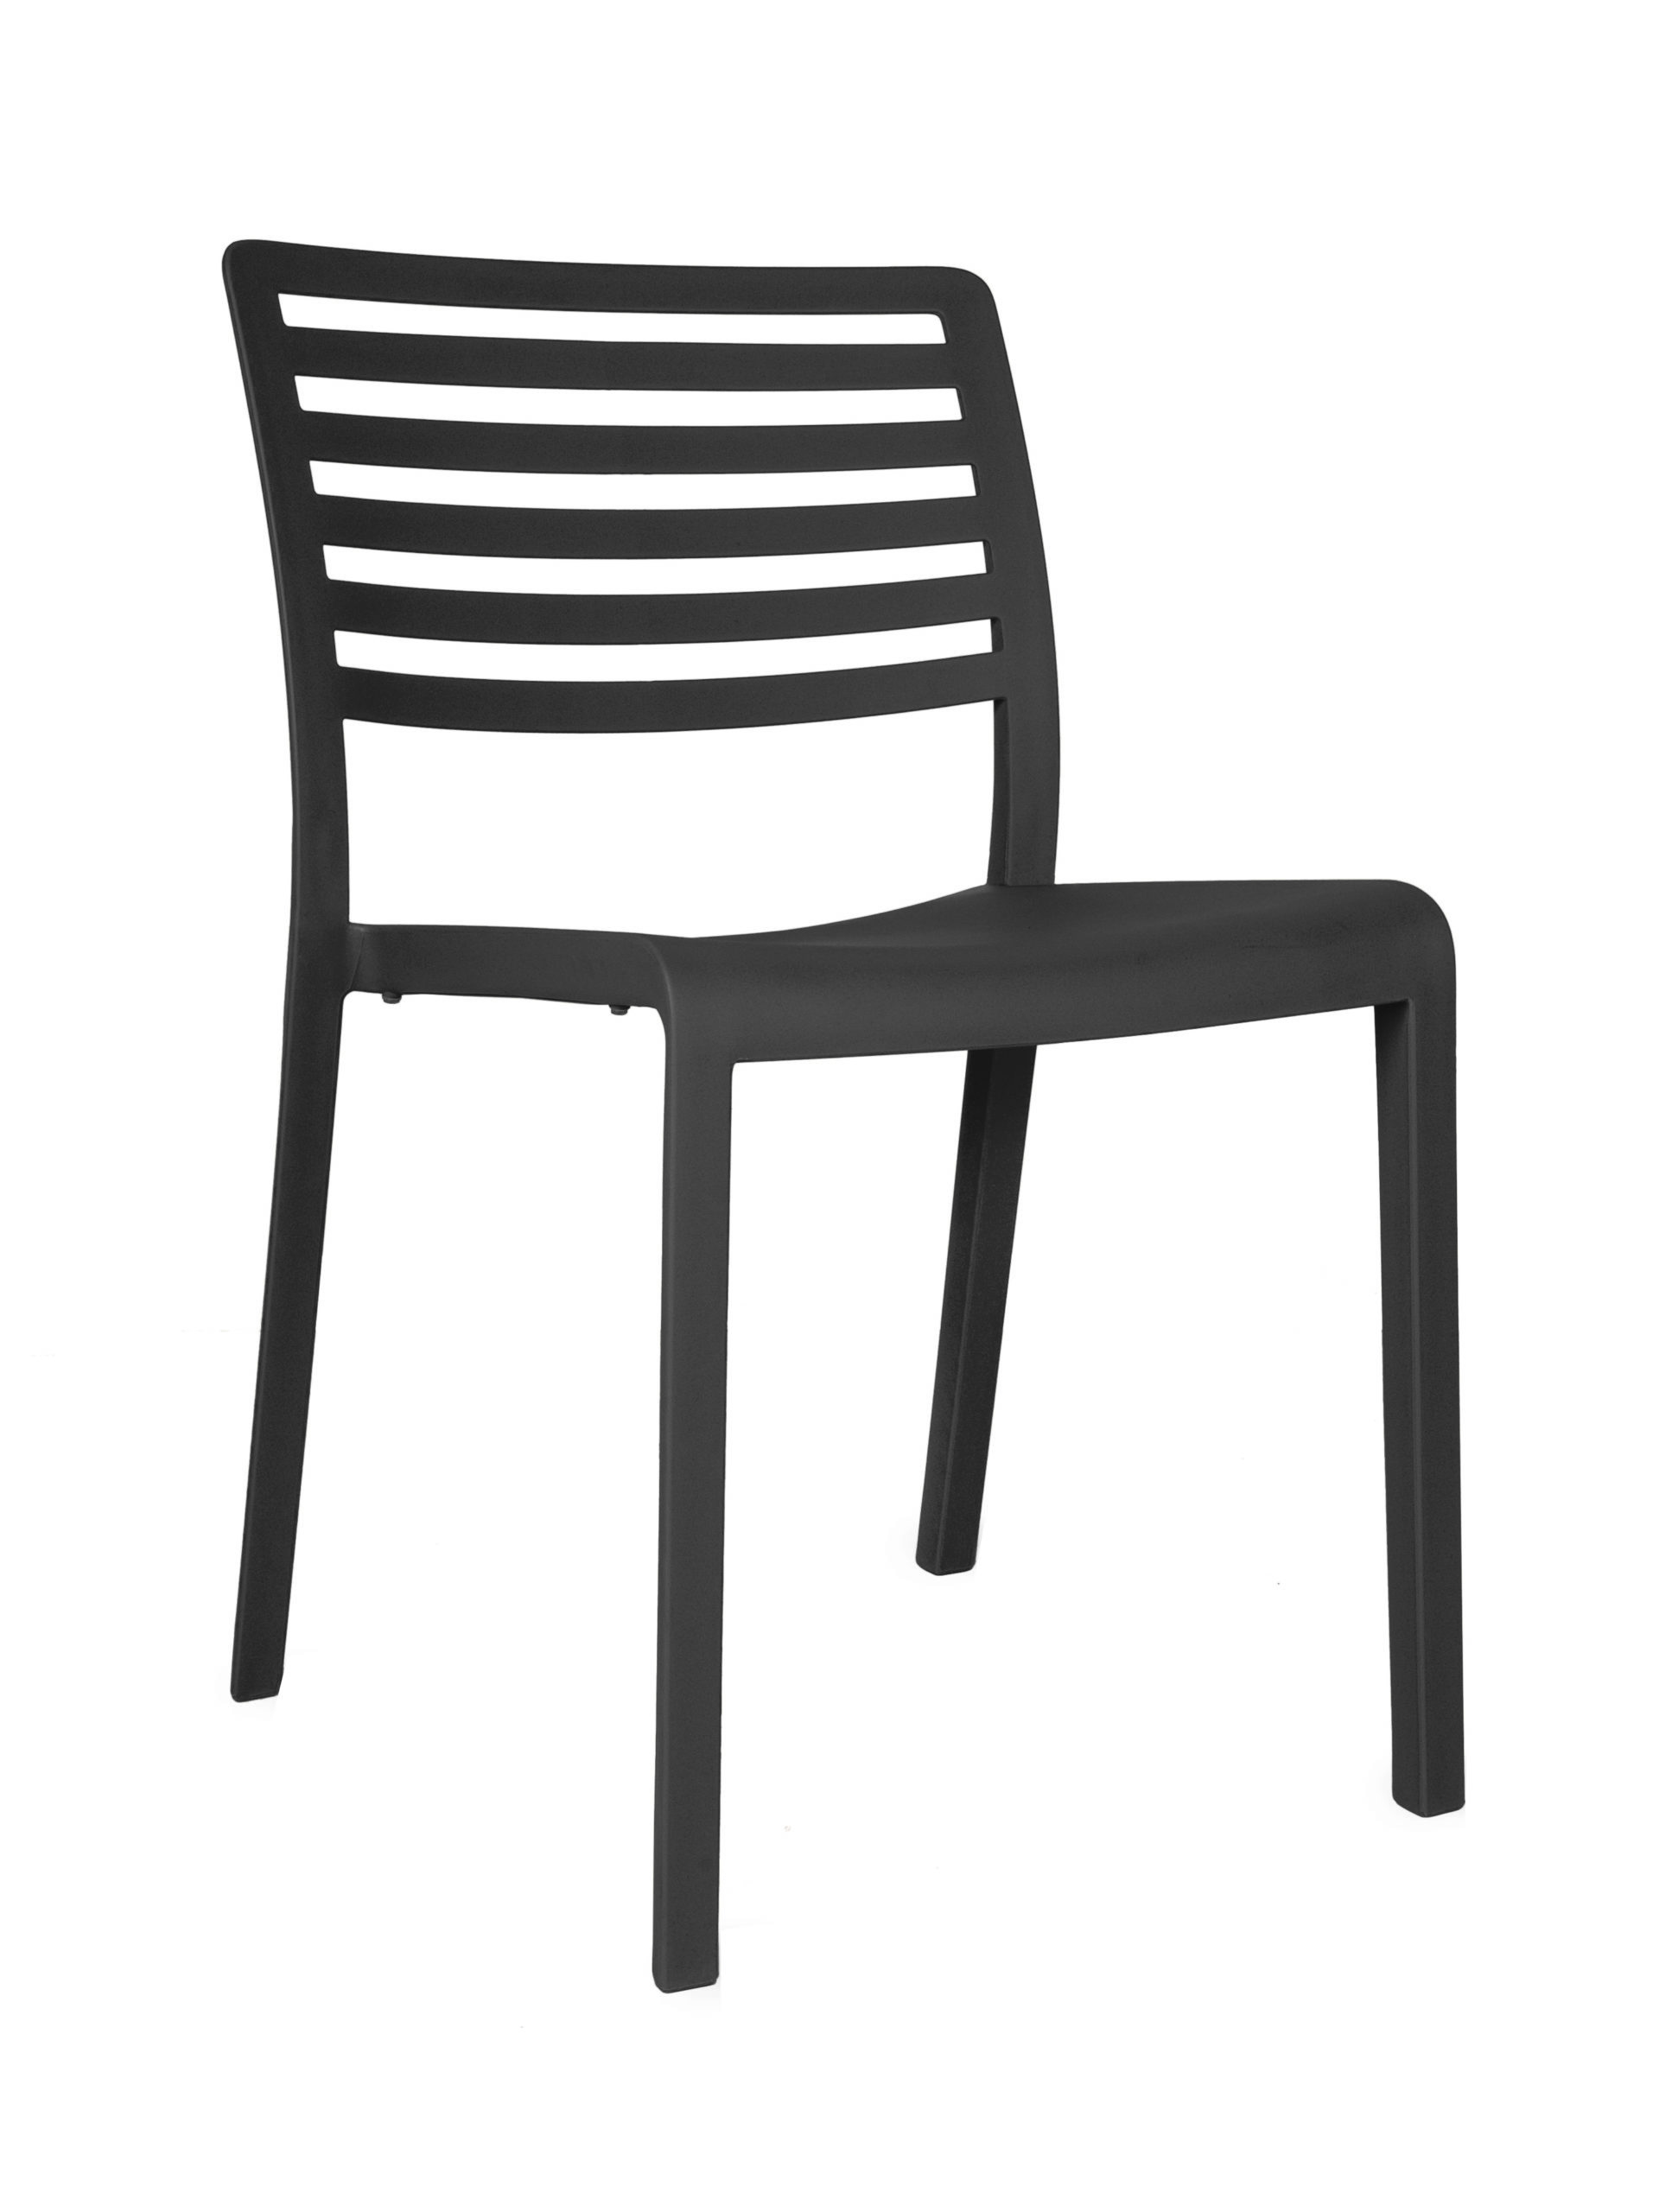 <p>Outdoor Furniture Contemporary Collection – Amarillo Side Chair – Black</p> <p> </p> <p>Chair designed for indoor and outdoor use available in a variety of colours, capturing essential features such as lightness, stability, functionality, ergonomics and care for the environment. Comfort, Modernity, style and durability</p>